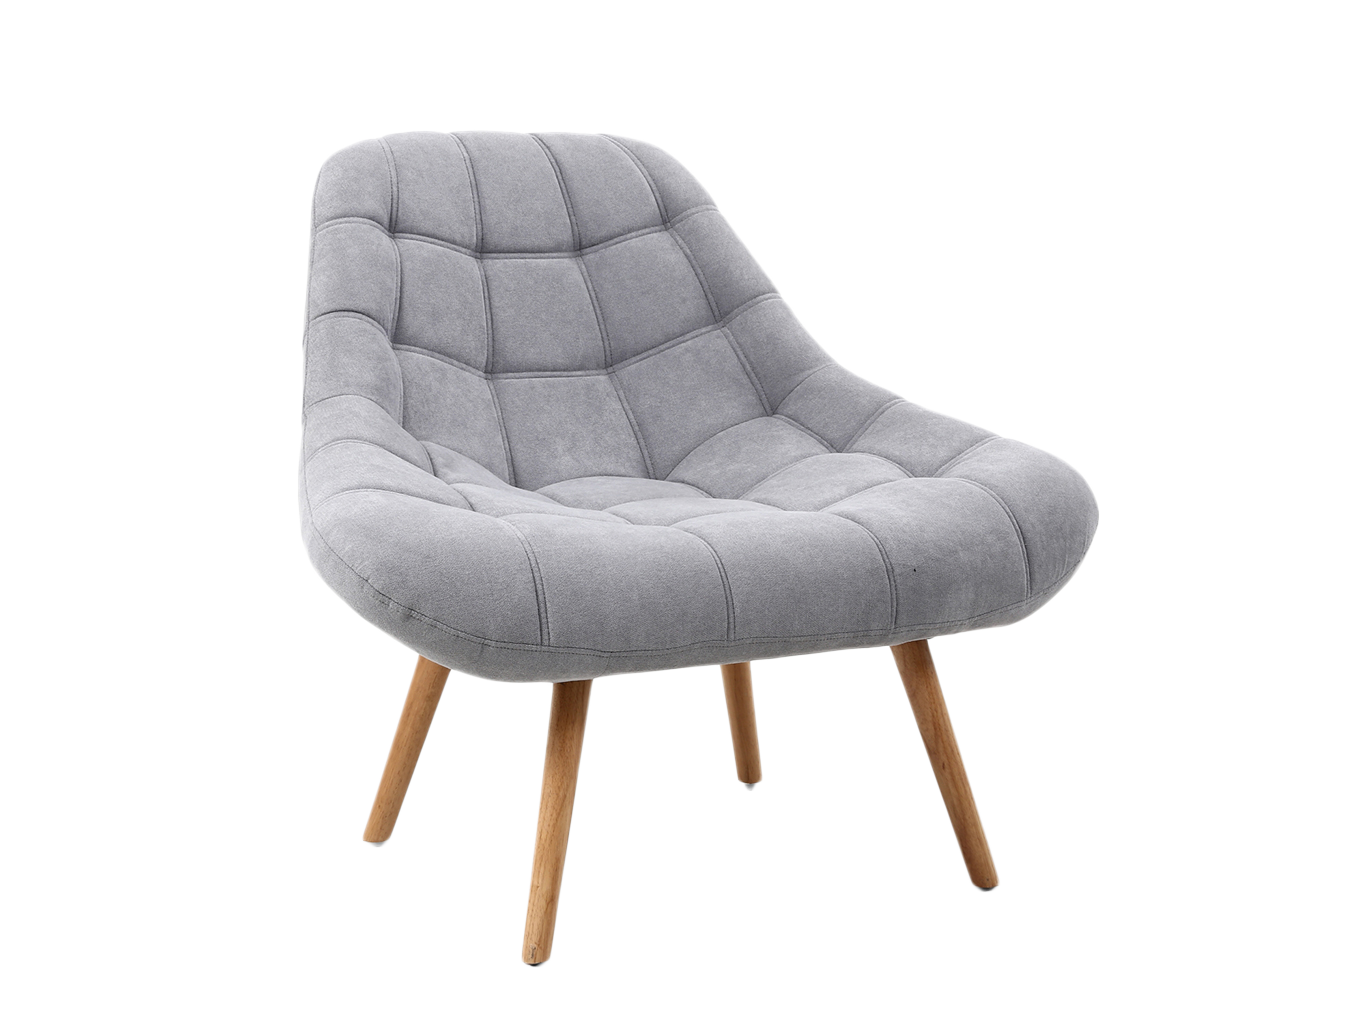 Lounge Chair with grey upholstery on wooden oak legs